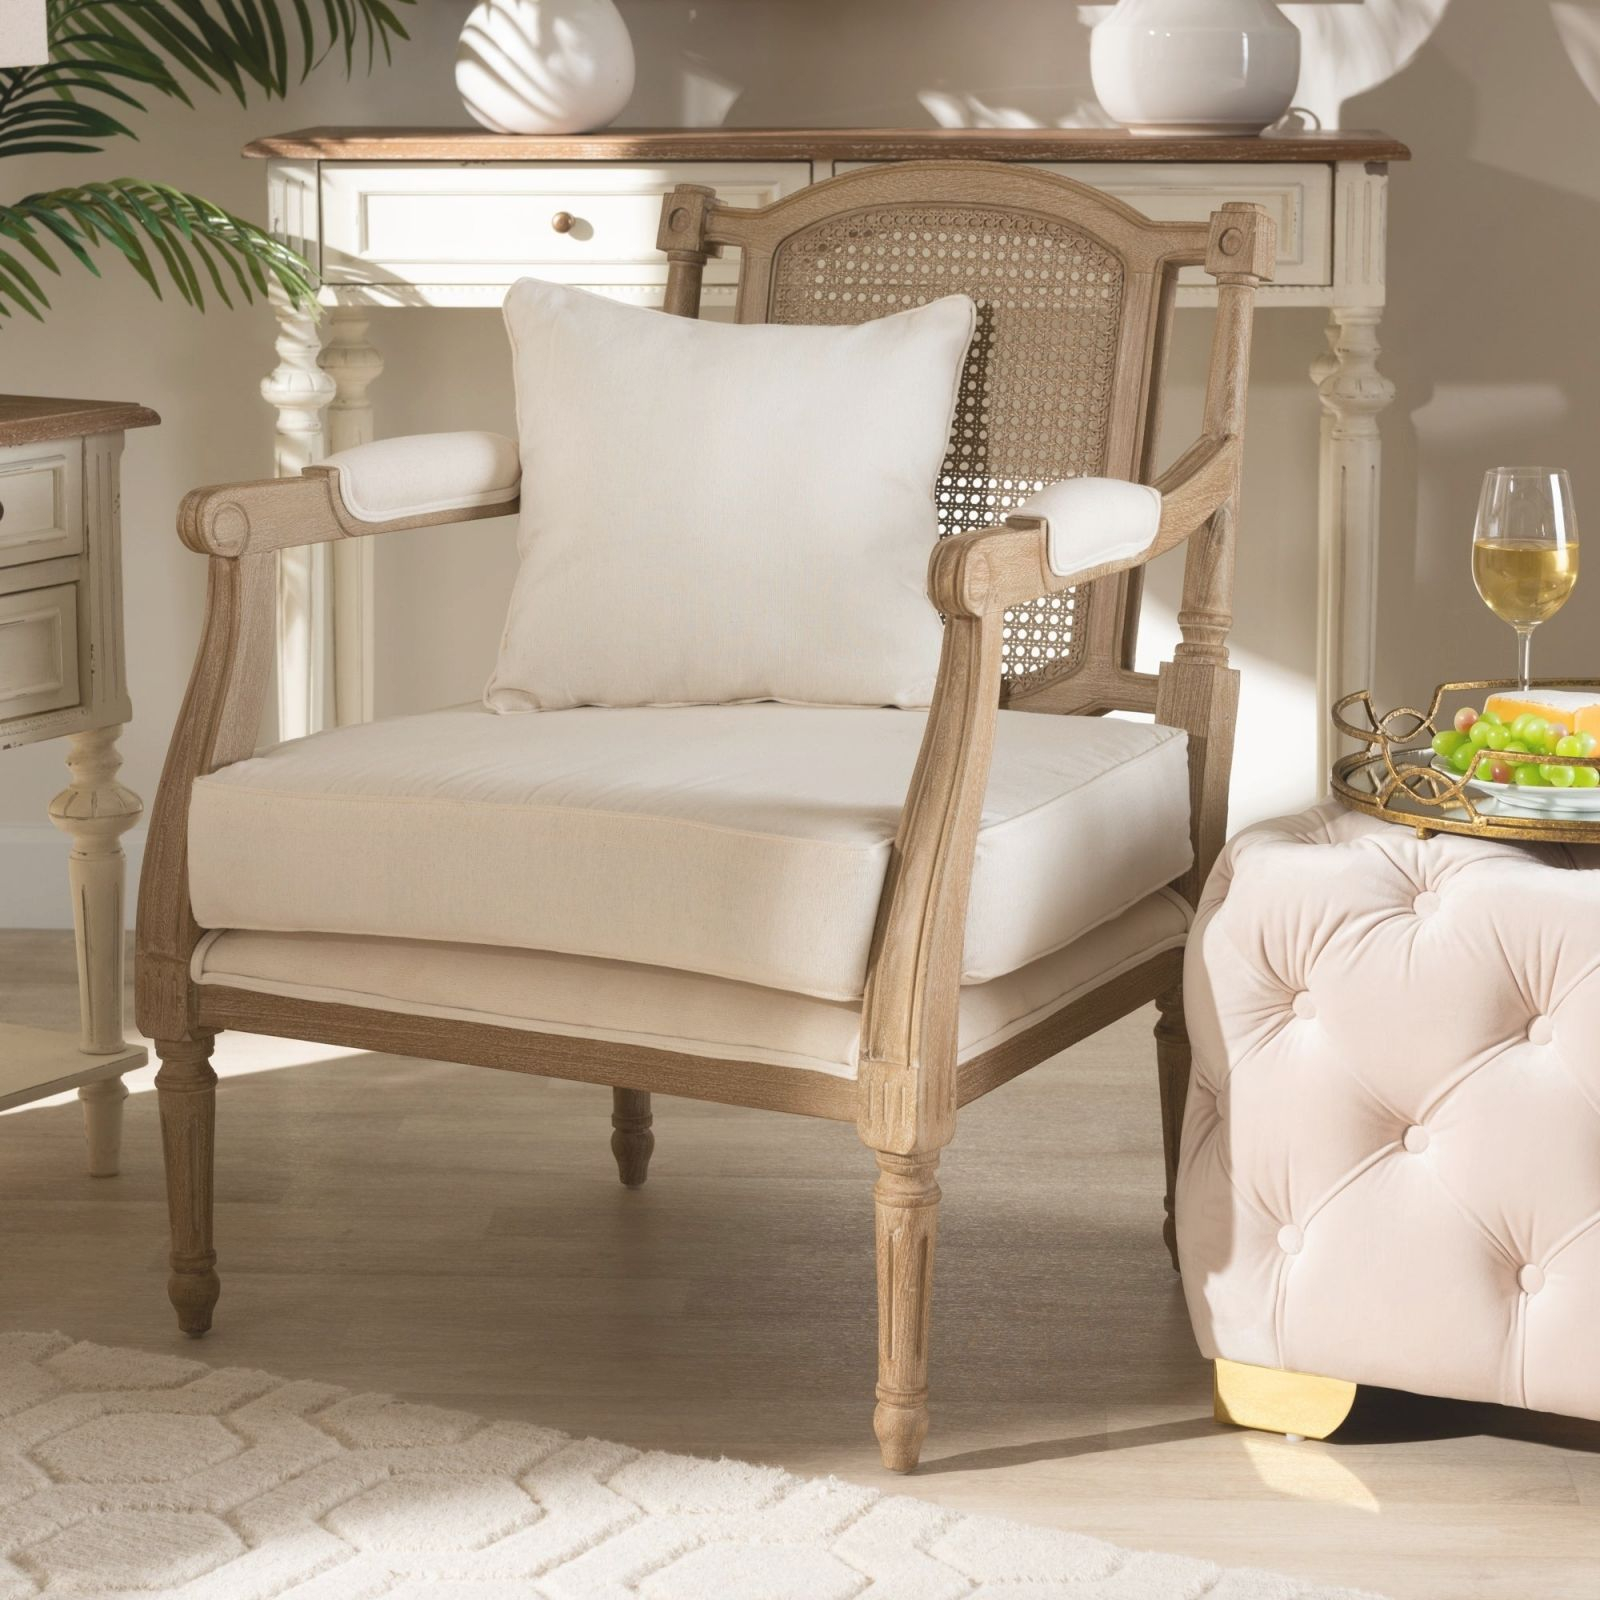 Clemence French Provincial Ivory Fabric Upholstered Wood Armchair regarding New French Provincial Living Room Furniture